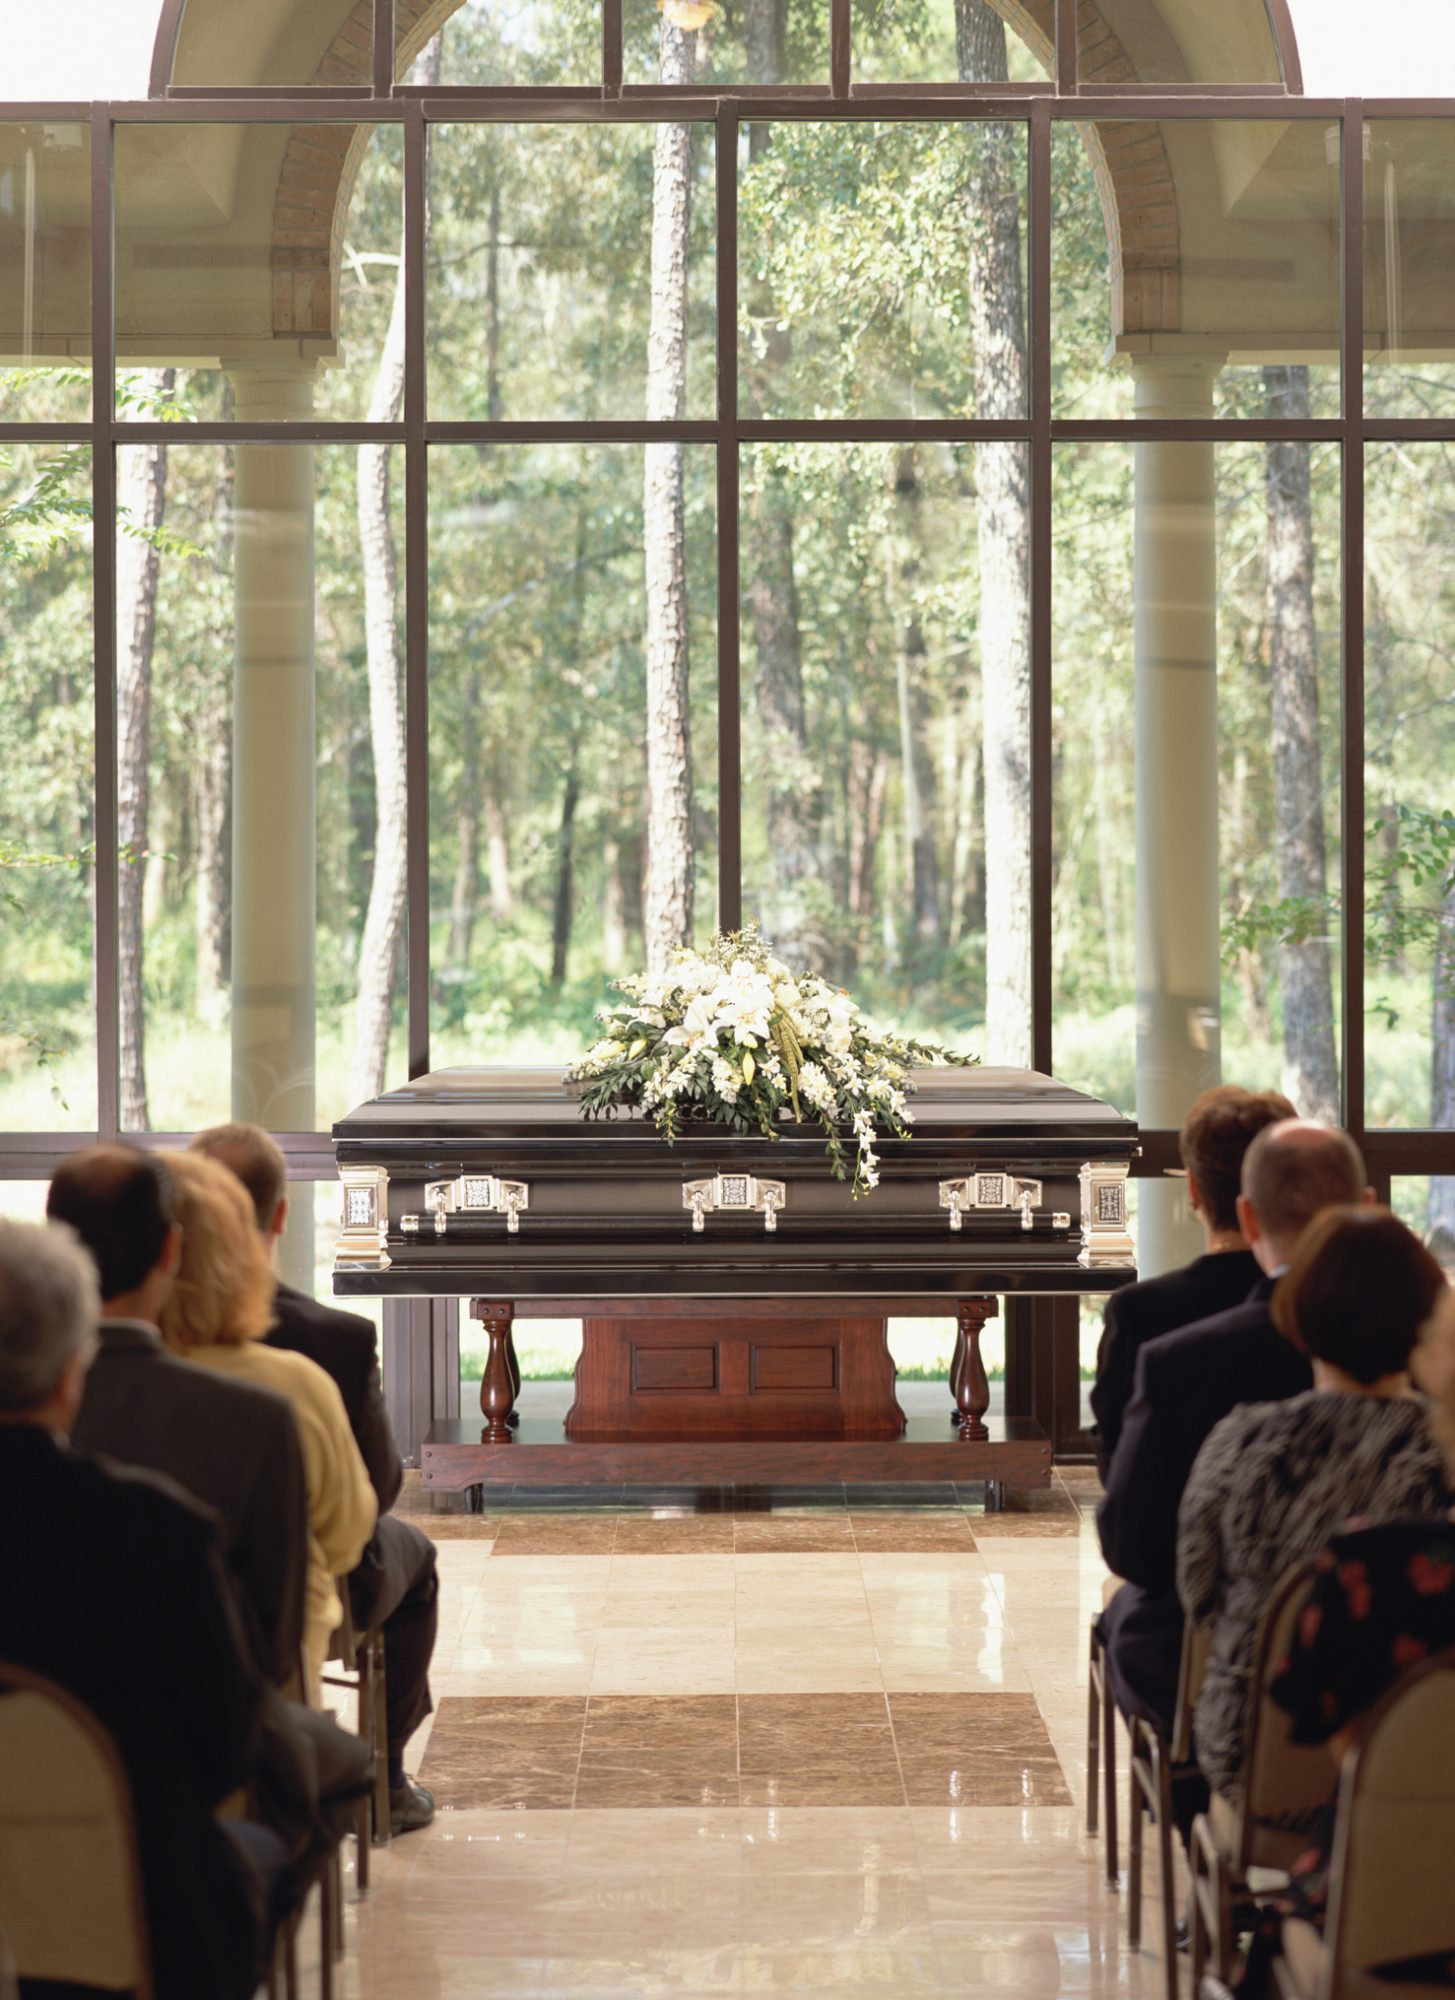 Why You Should Always Attend the Funeral